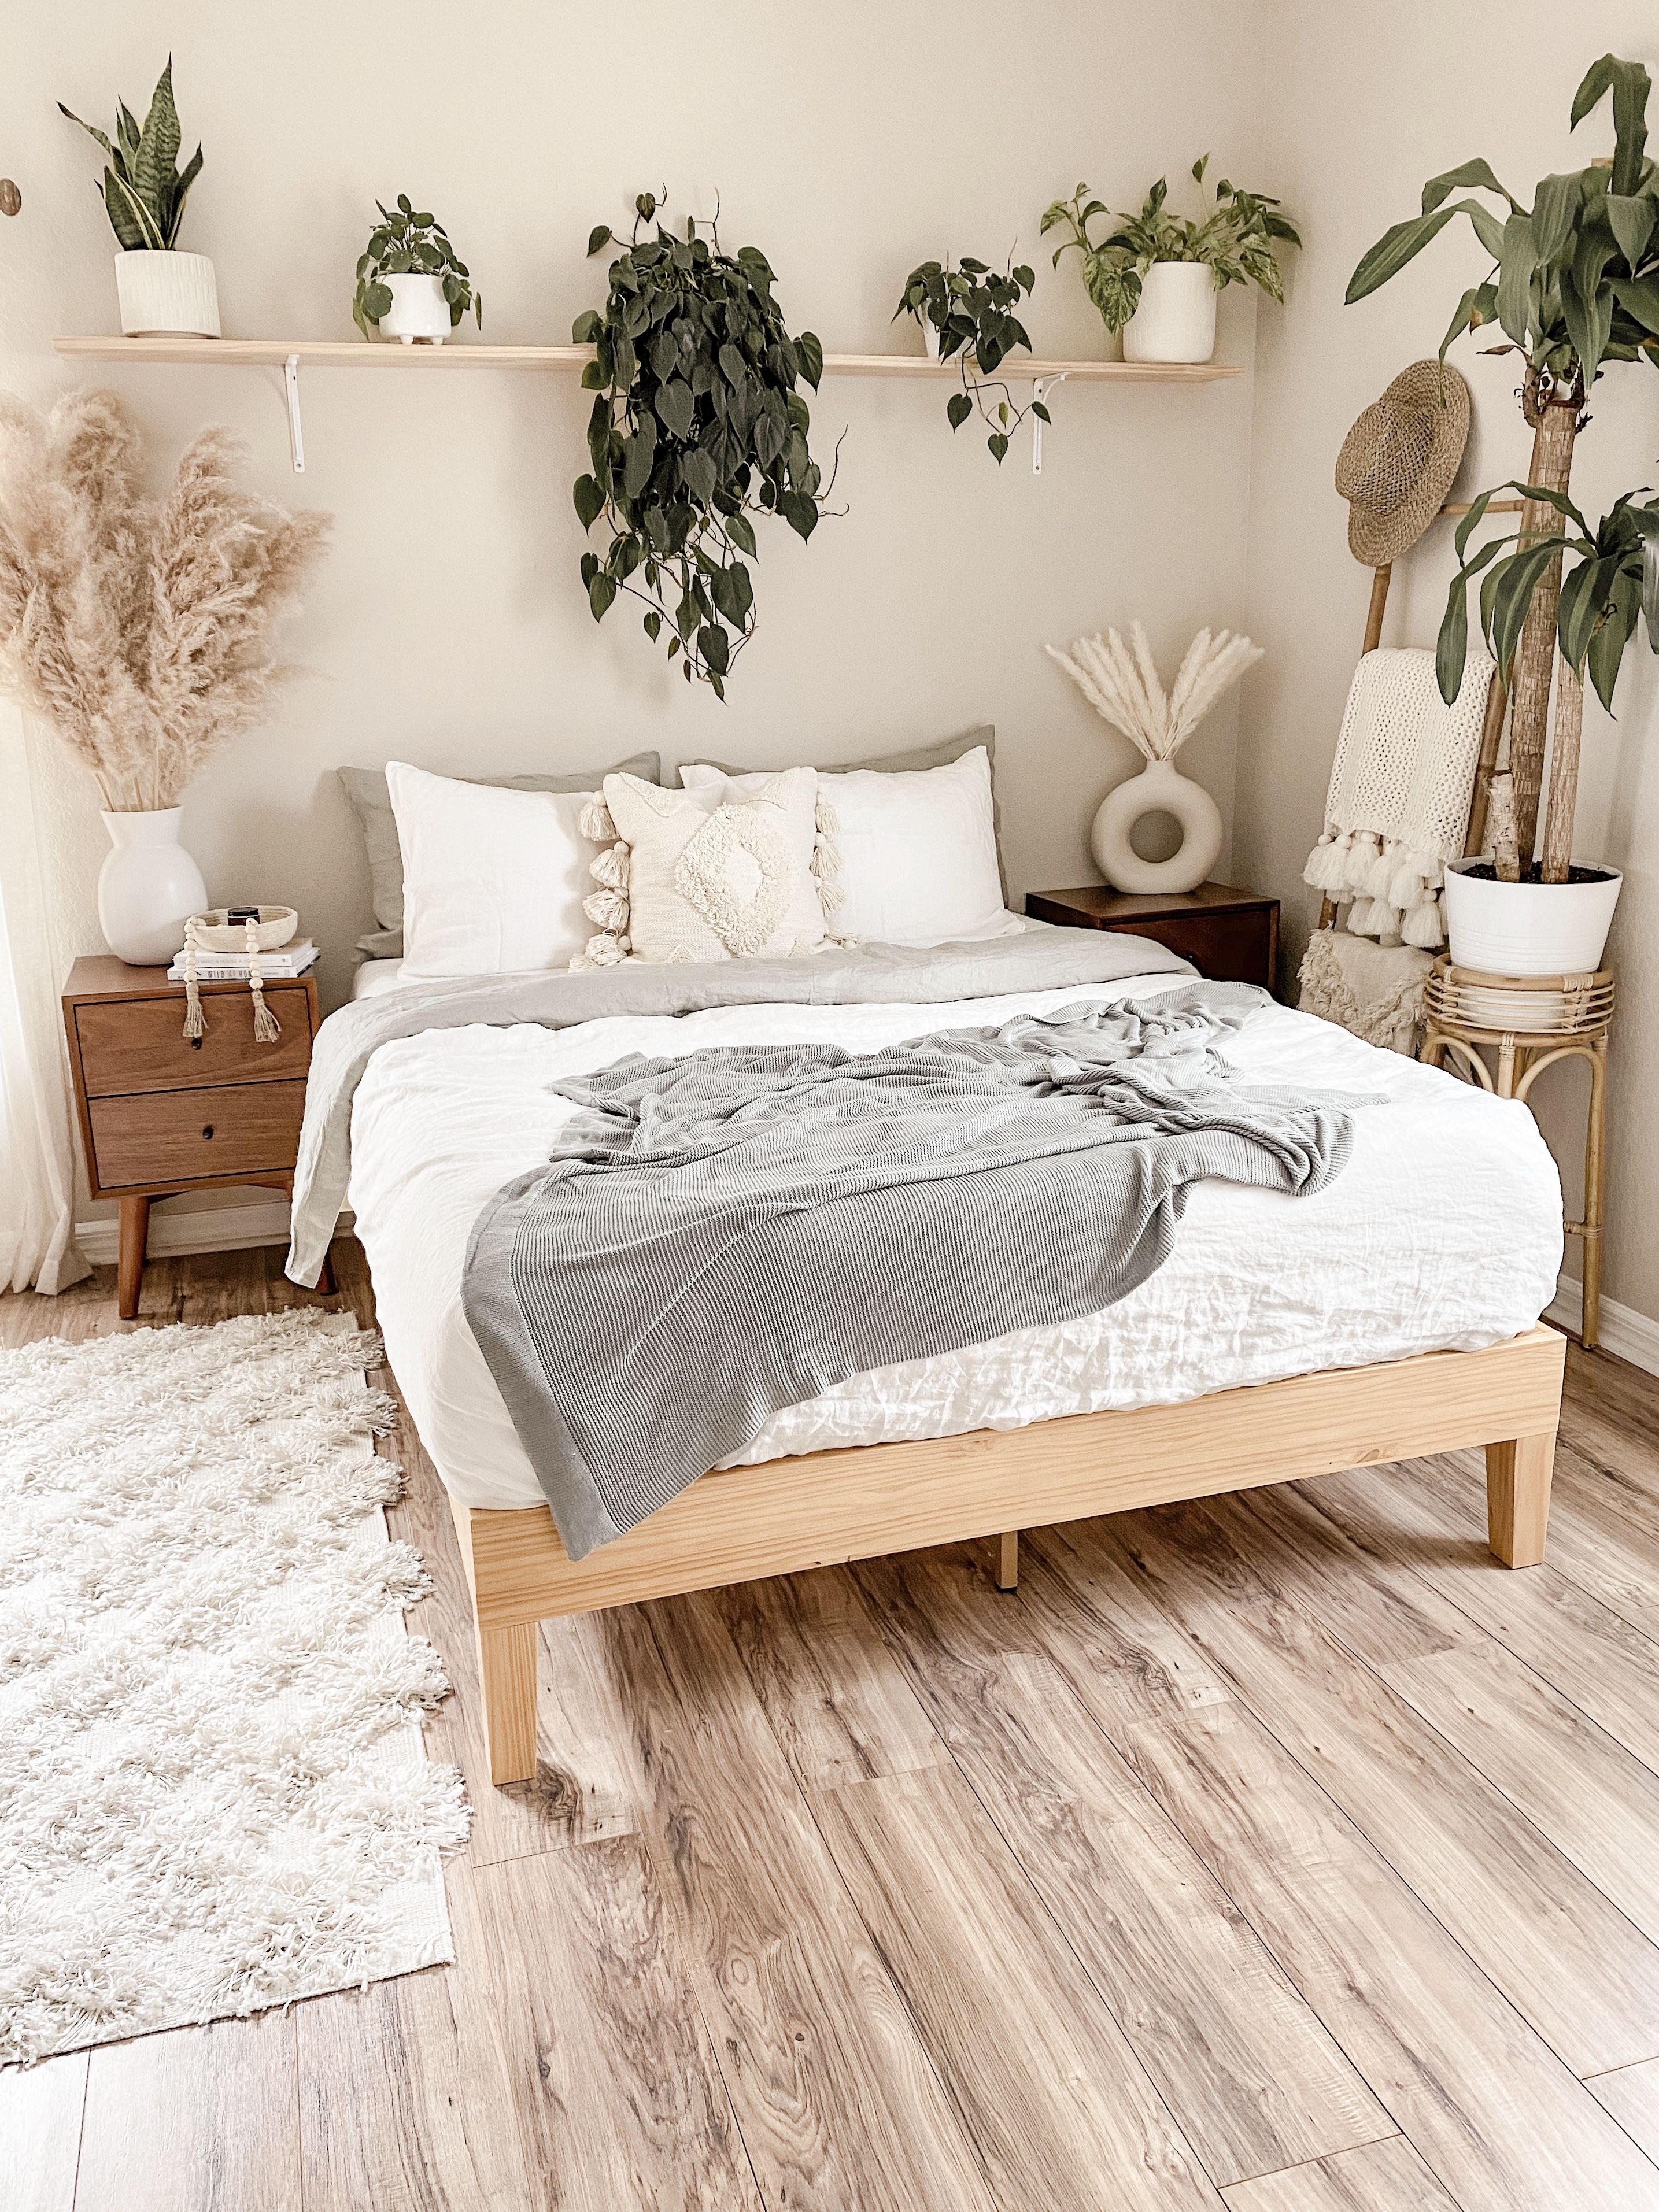 Moiz Deluxe Wood Platform Bed Frame styled by @rachelkathleenhome